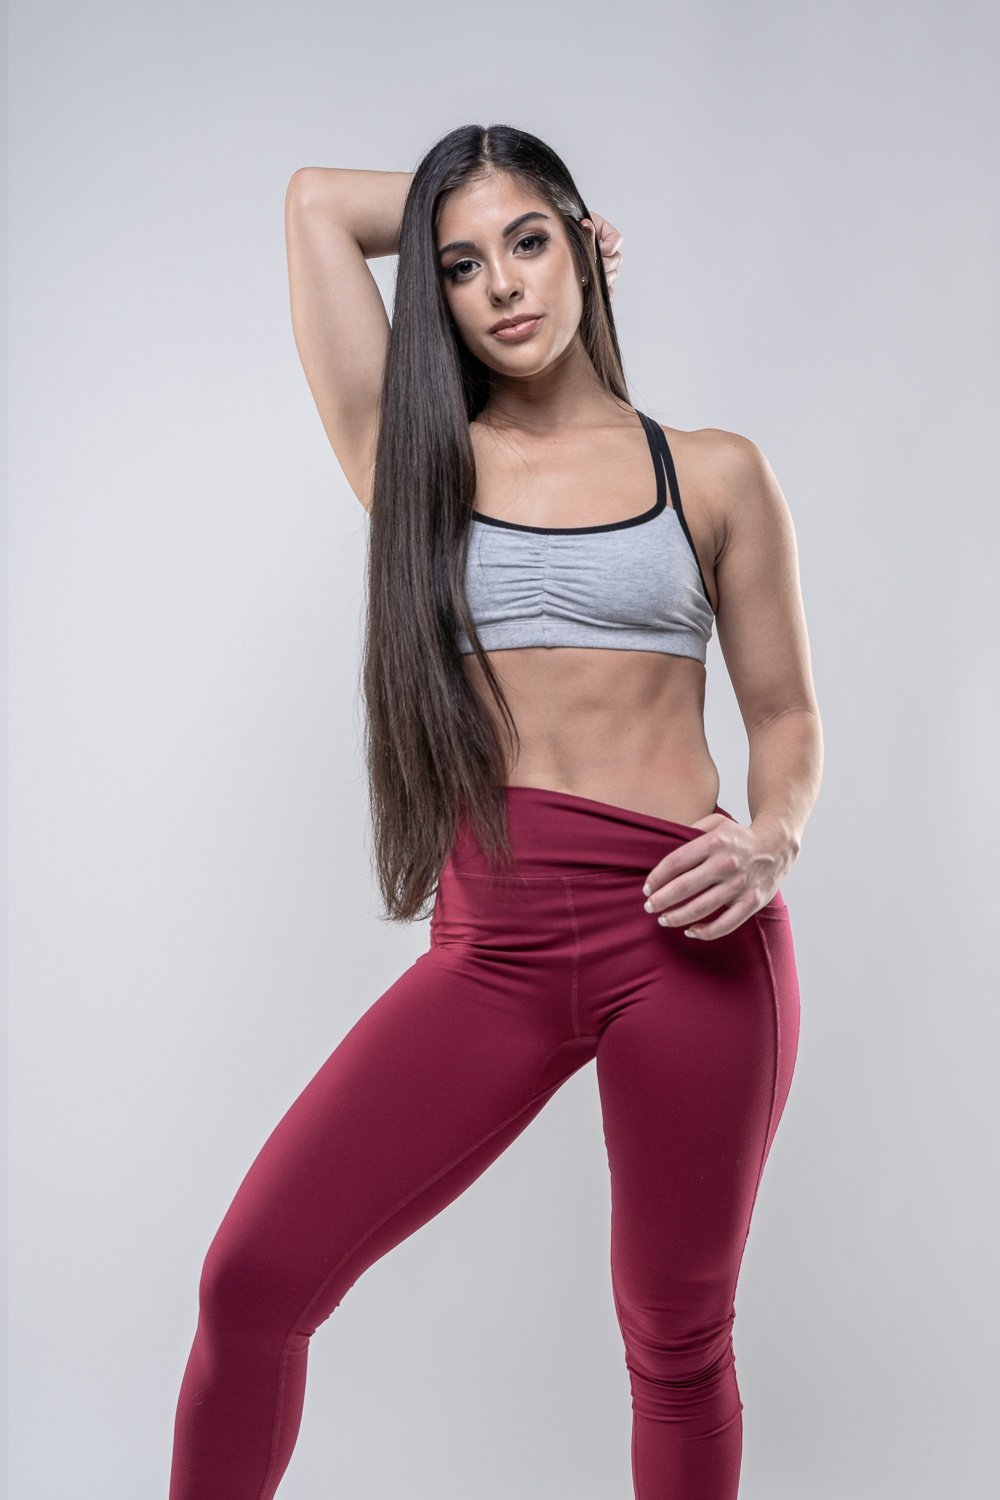 fitness instructor,abs, online fitness coach, online fitness trainer, female fitness model, goldens cast iron kettlebell, goldens cast iron fitness, gym shark woman, green fitness clothing, female fitness model, gymshark fitness gear, gymshark fitness apparel, NPC bikini competitor